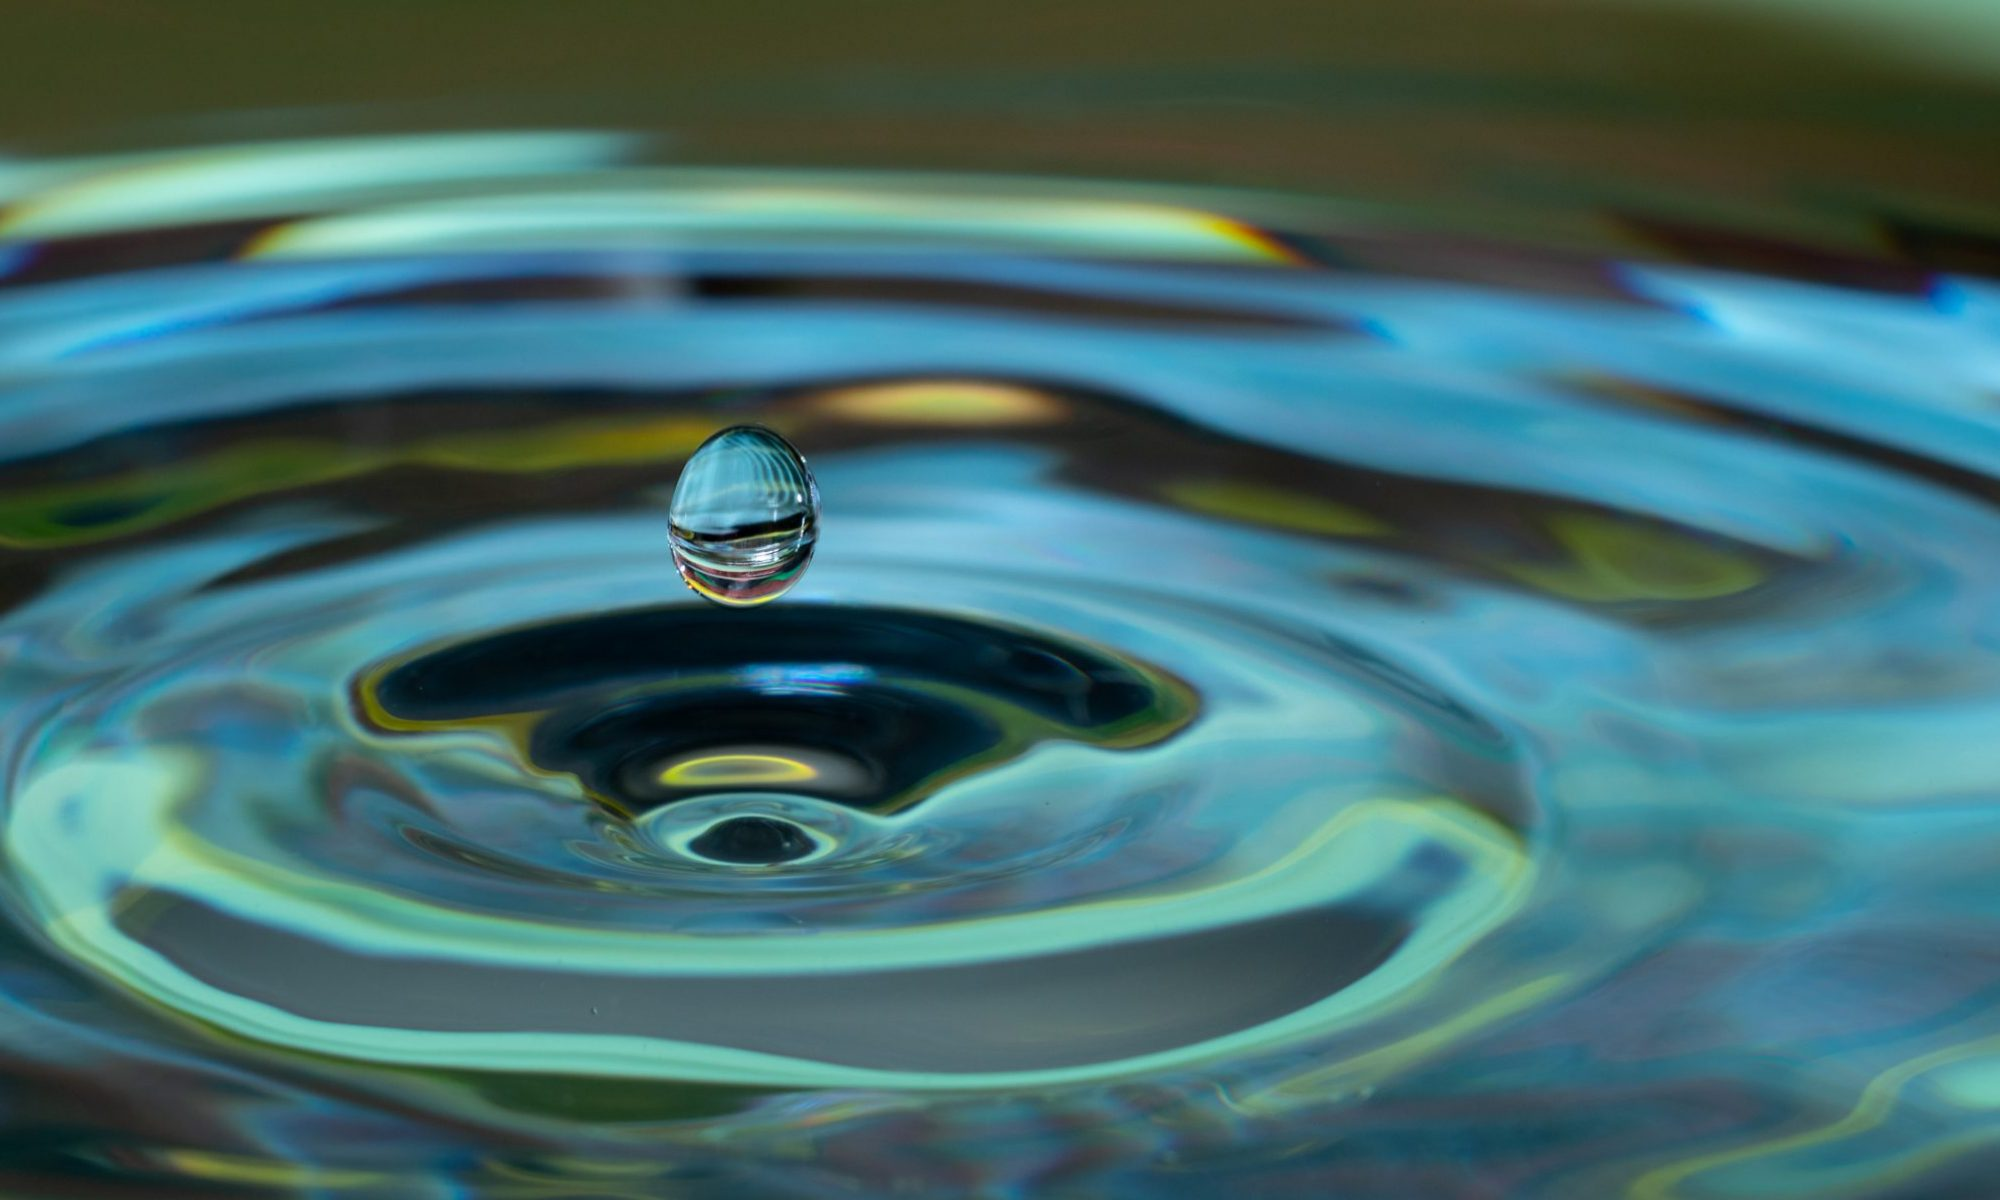 A close-up photograph of a single water droplet about to hit a pool of water; pool of water is causing a circular ripple motion. Water, in this case, signifies sustainability. Business Impact article for Making an impact: corporate social responsibility.